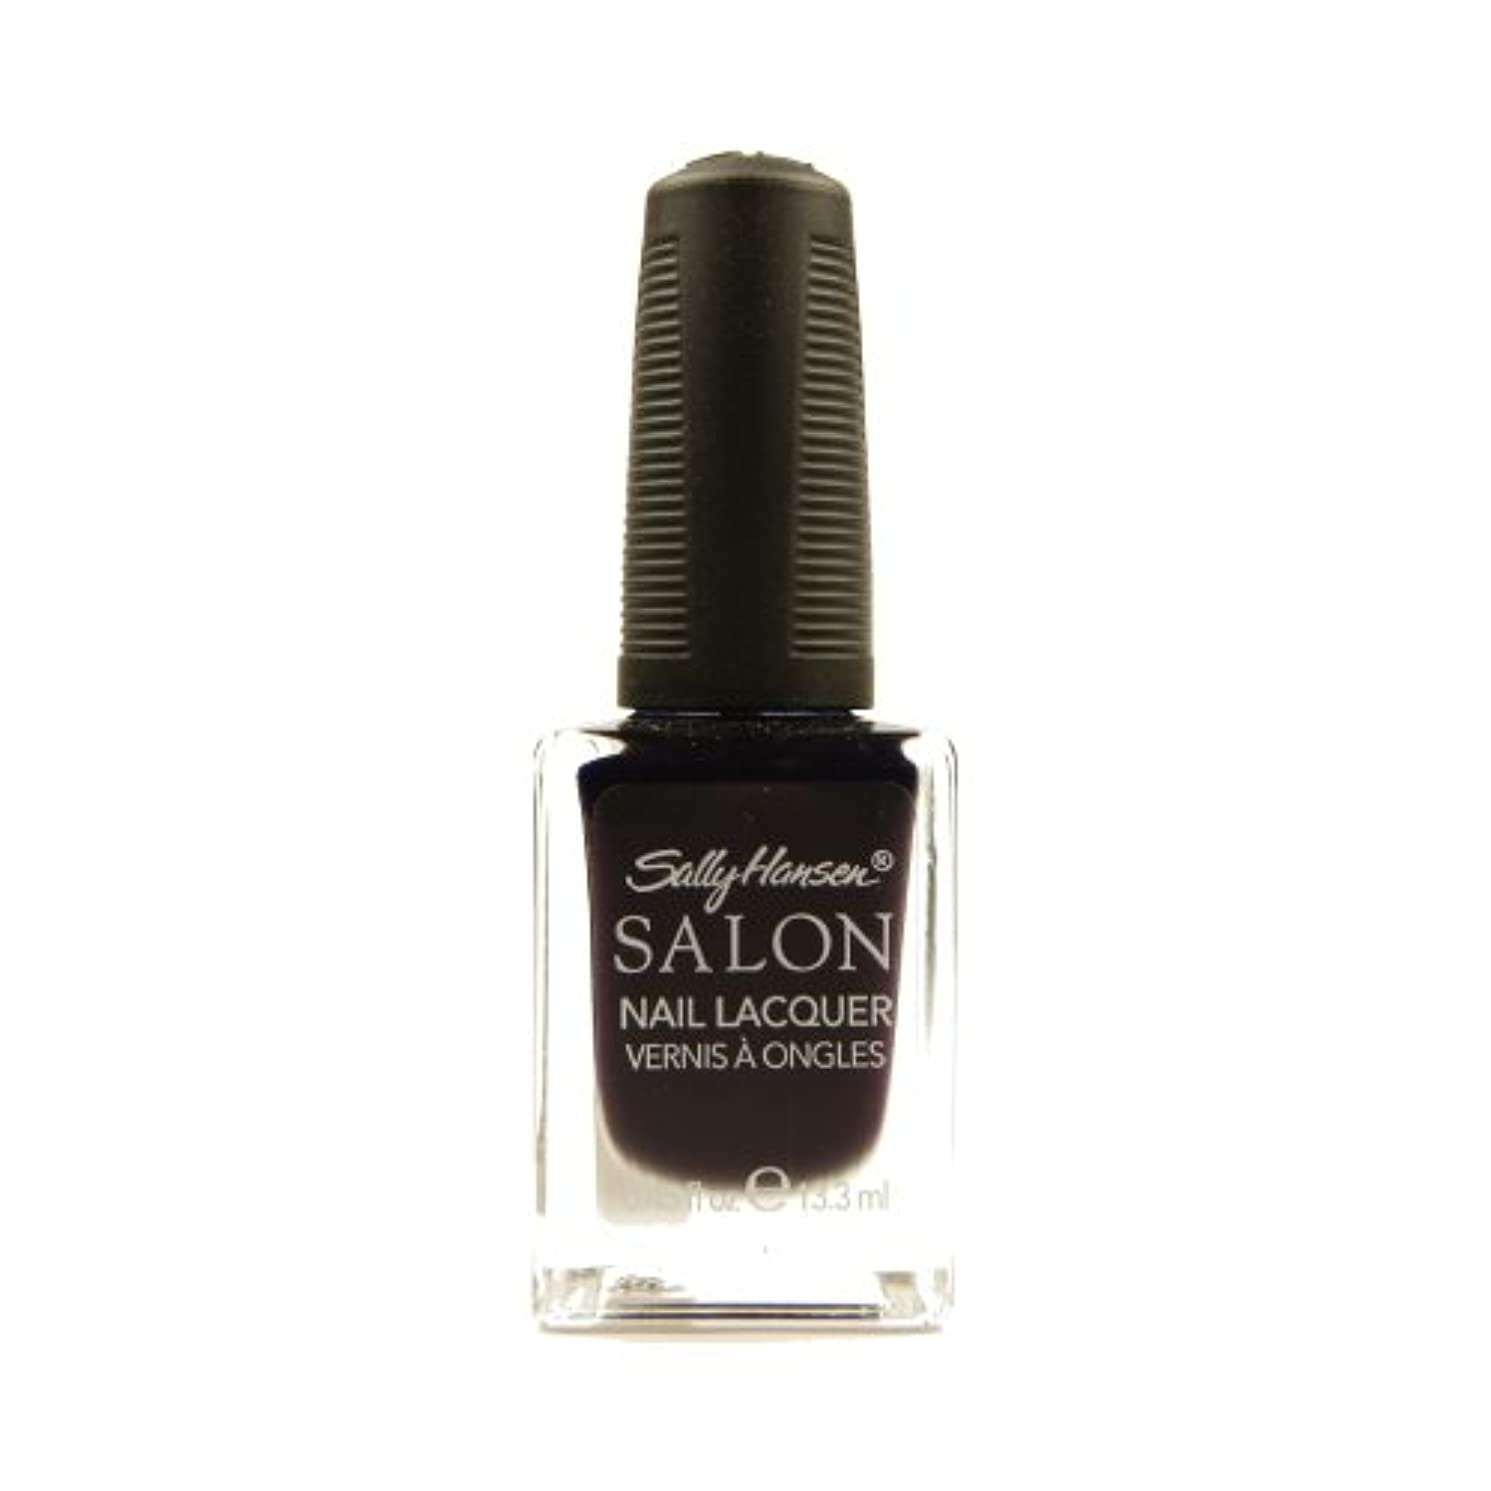 故国スクラッチ促すSALLY HANSEN Salon Nail Lacquer 4134 - The Deepest of Violets (並行輸入品)